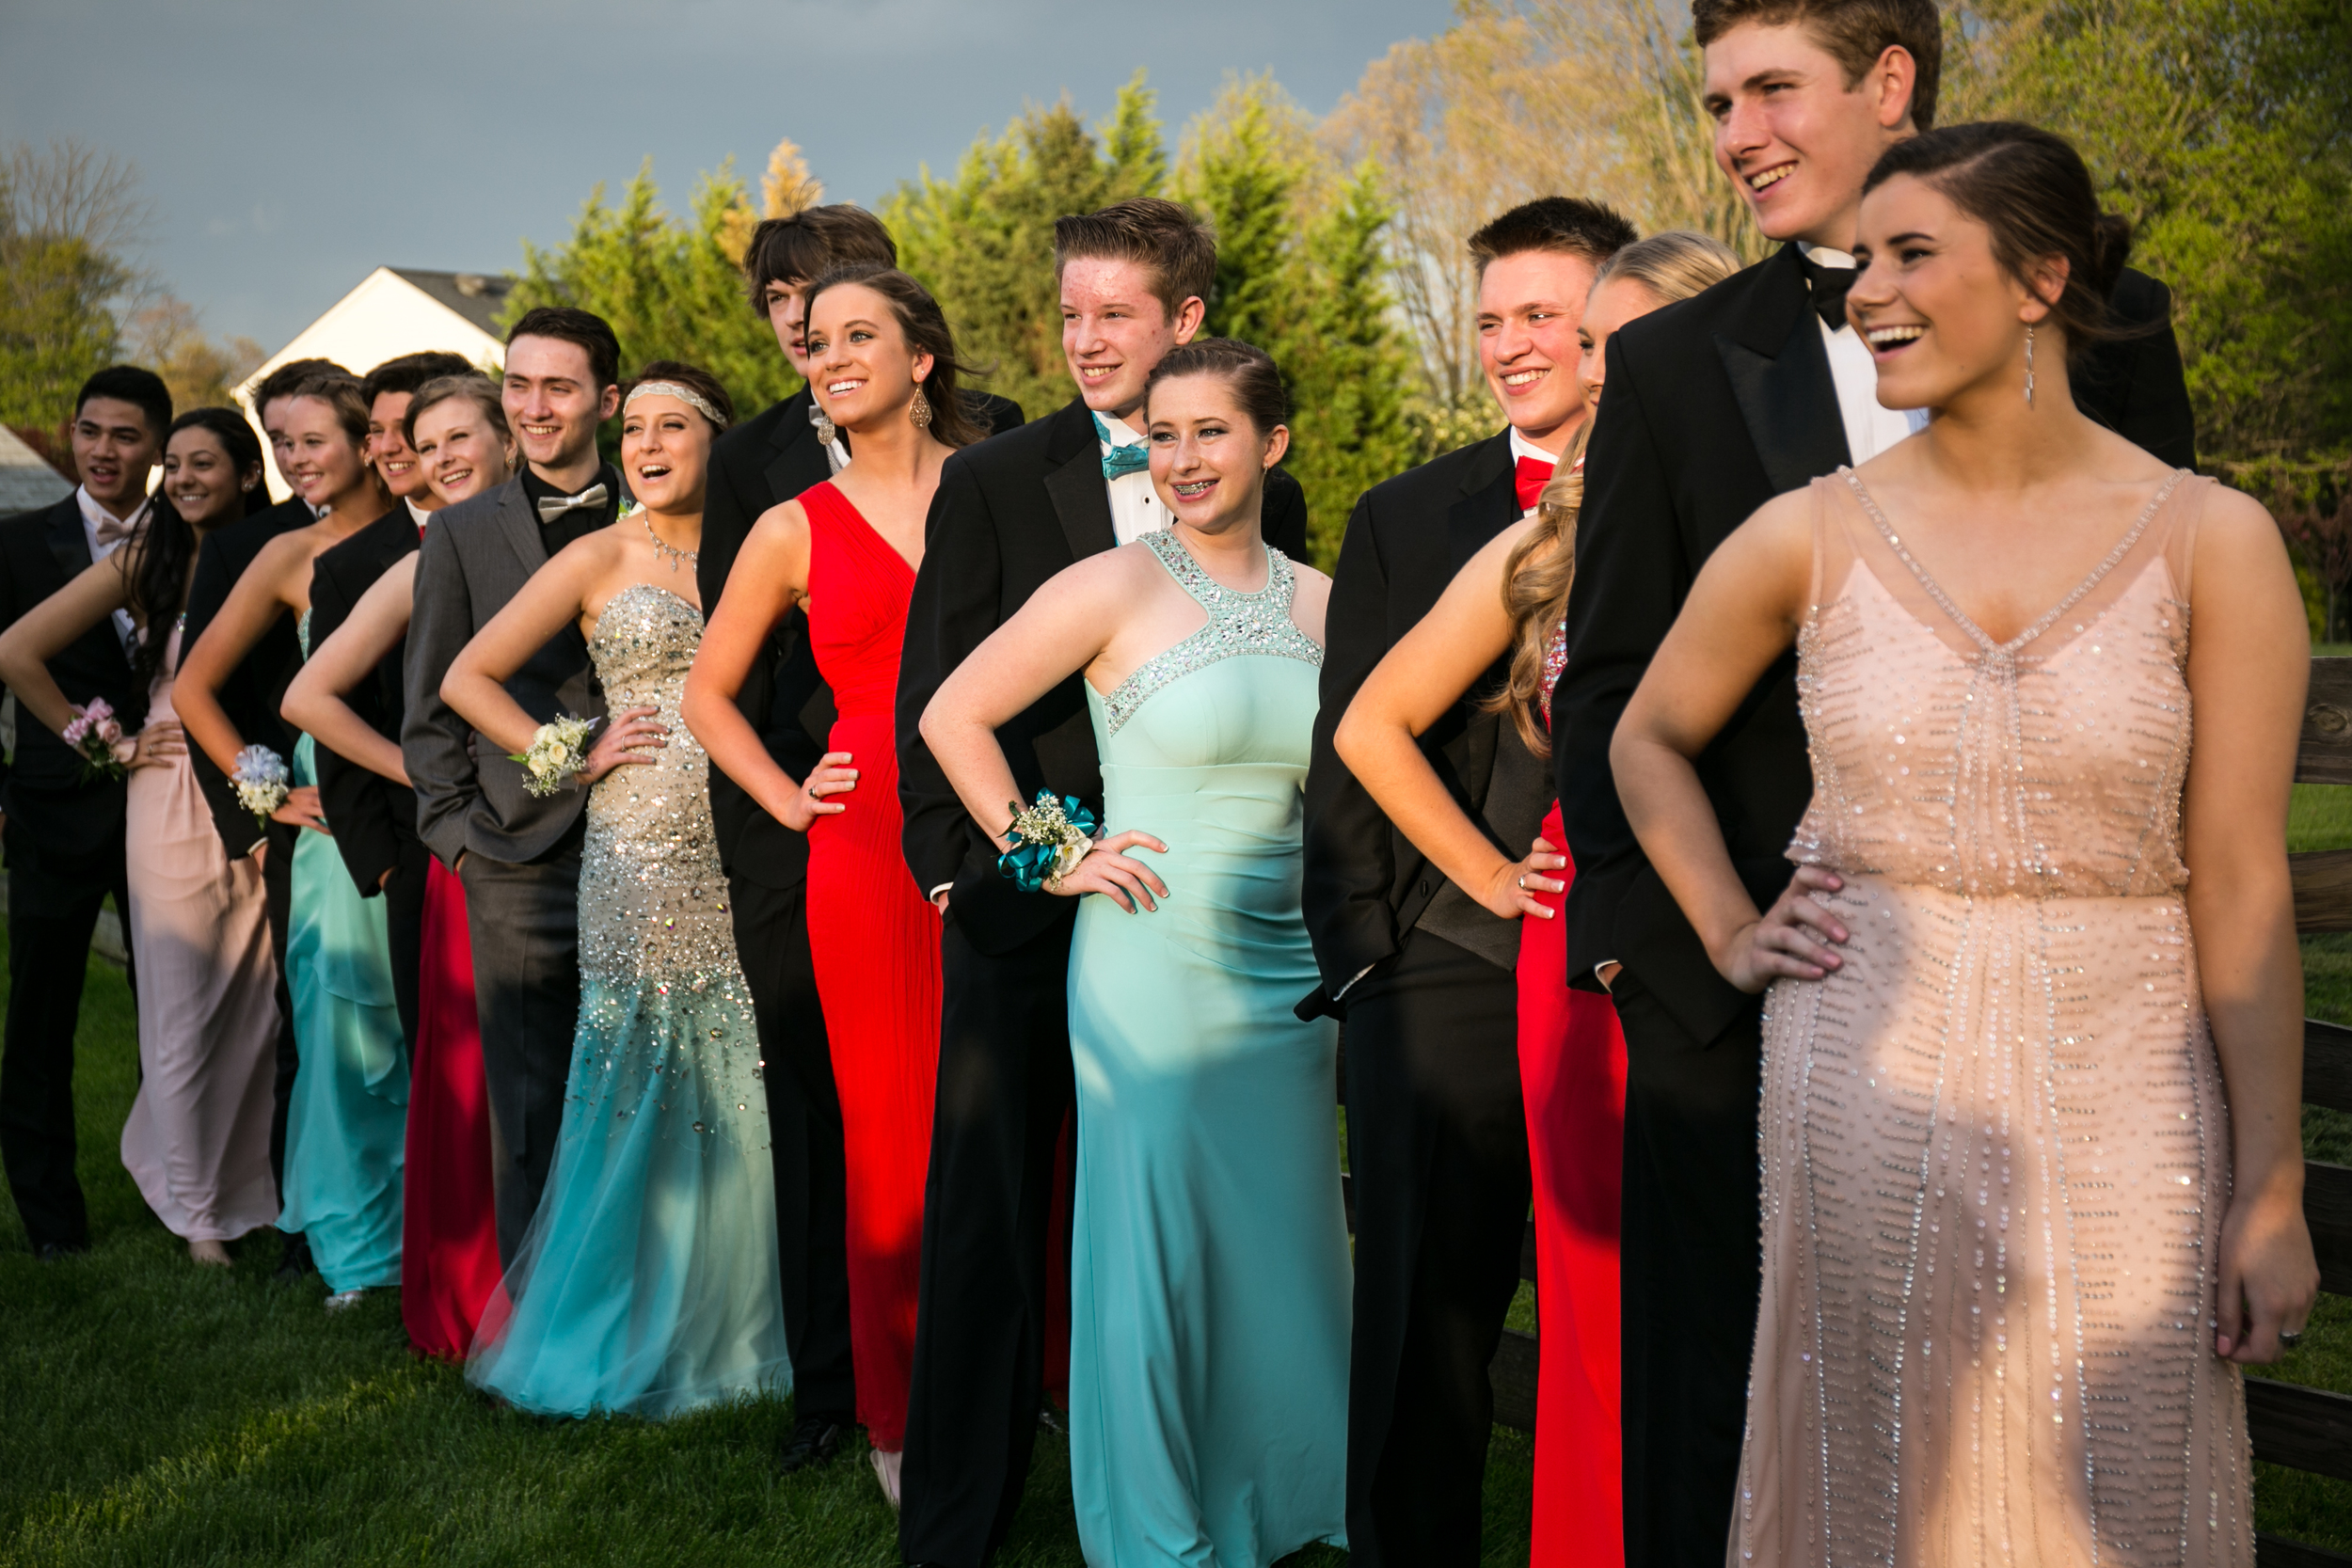 Mount-De-Sales-Pre-Prom-May-2014-40.jpg